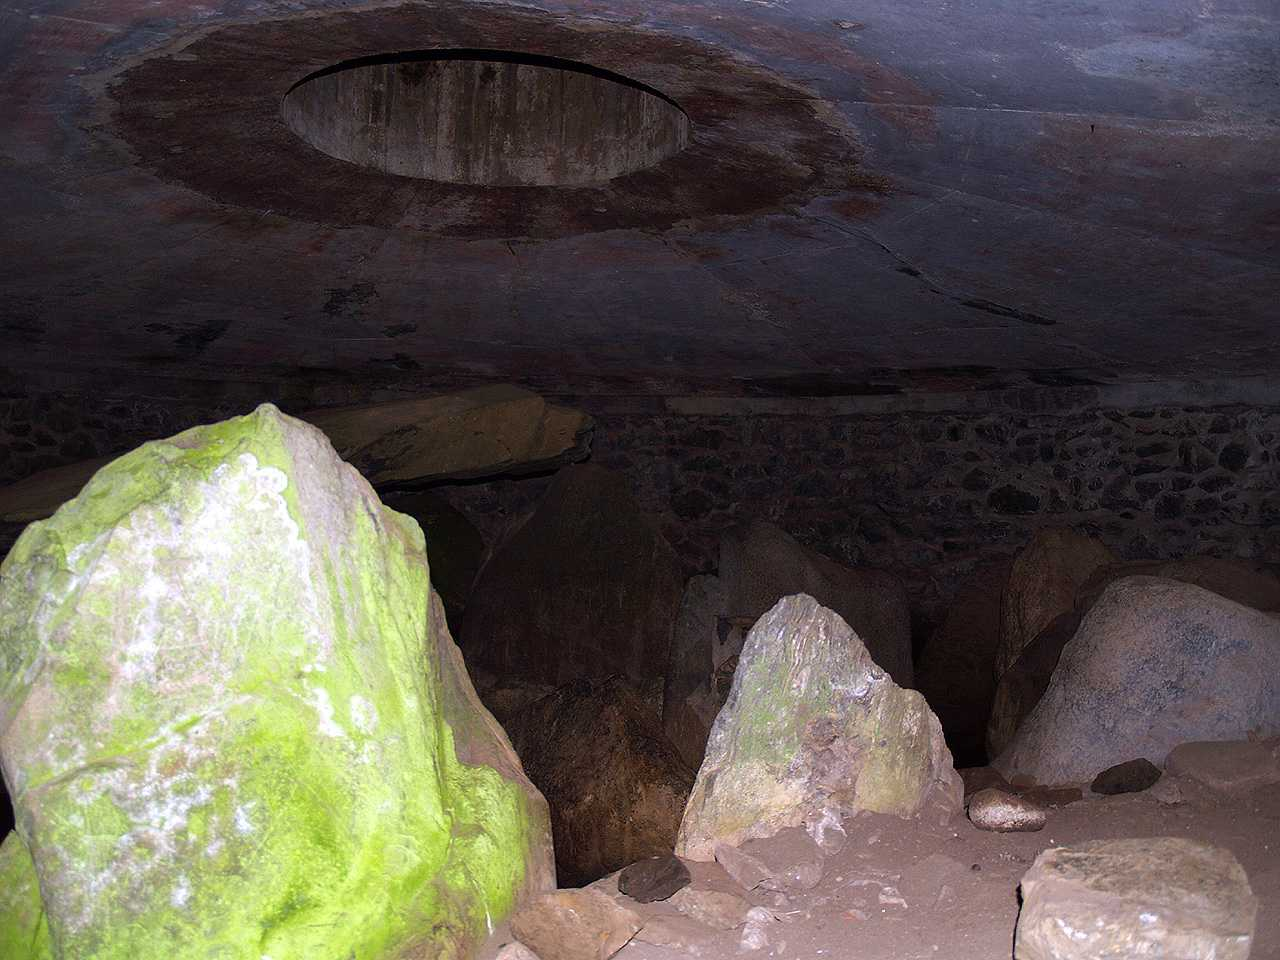 Anglesey, Llanfaelog, Barclodiad-y-Gawres Burial Chamber - Standing Stones and Ceiling (recent addition)